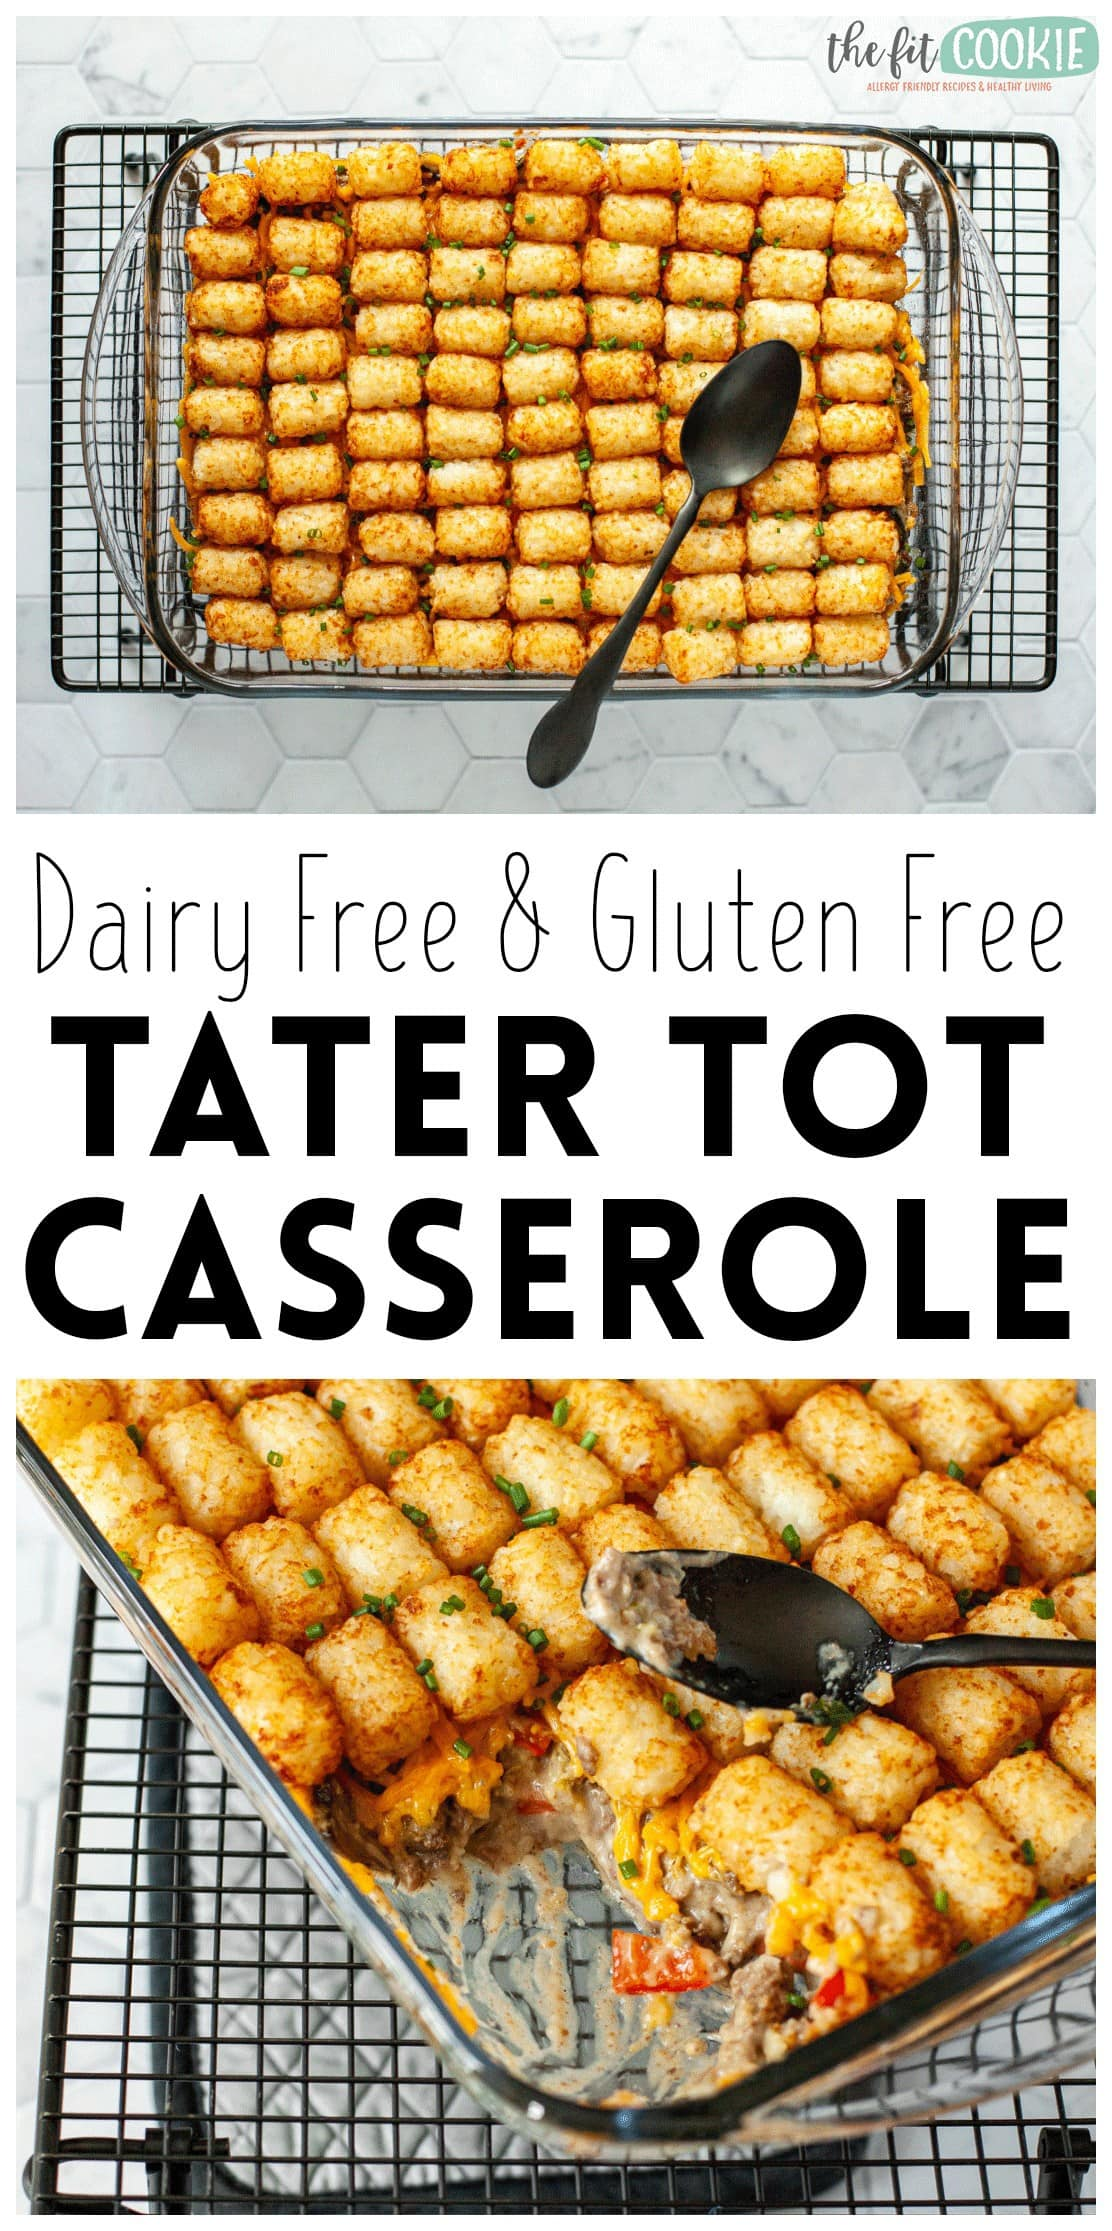 photo collage of tater tot casserole in a glass baking pan